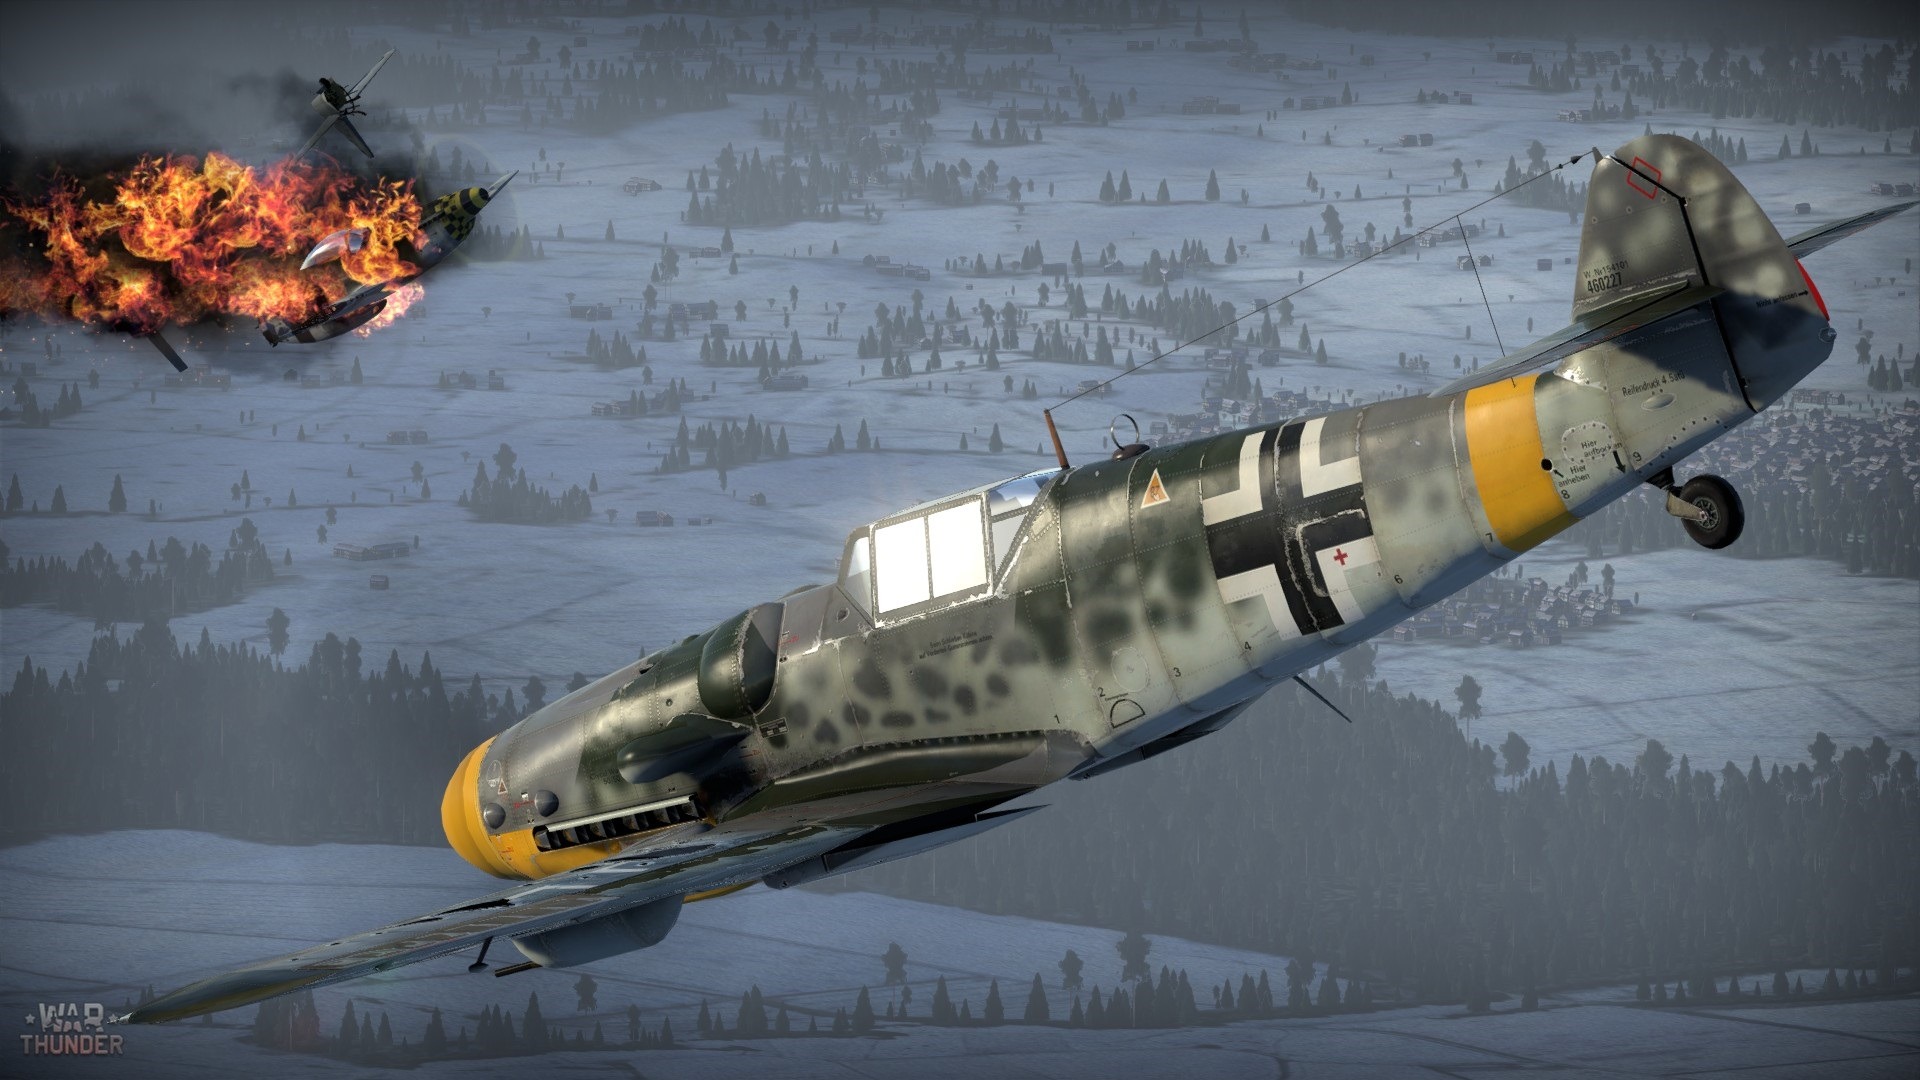 bf109s-inaction-2bsb8k.jpg